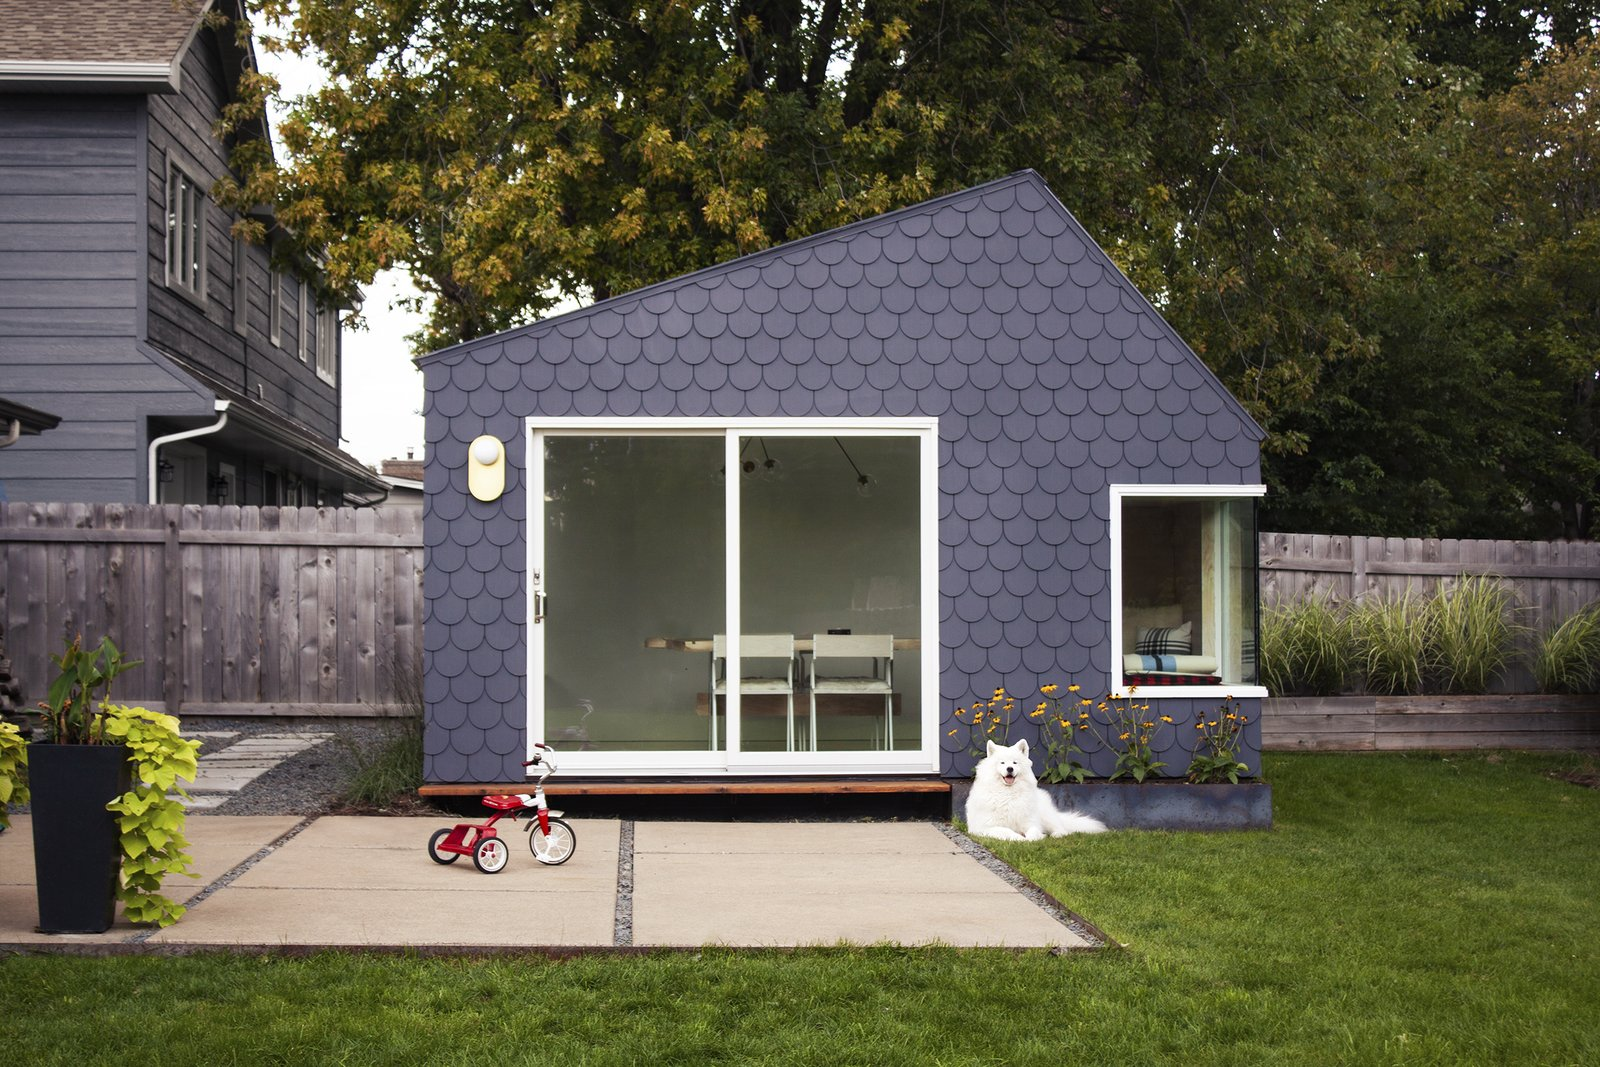 "Exterior, Sawtooth RoofLine, Tiny Home Building Type, Metal Roof Material, and Concrete Siding Material The couple finished the exterior siding with shingles made of Hardie board and painted a deep purple. ""We wanted an exterior cladding that was durable, low-maintenance, and relatively DIY-friendly,  Best Photos from Budget Breakdown: A Creative Couple in Minneapolis Build a Multipurpose Backyard Studio For $18K"